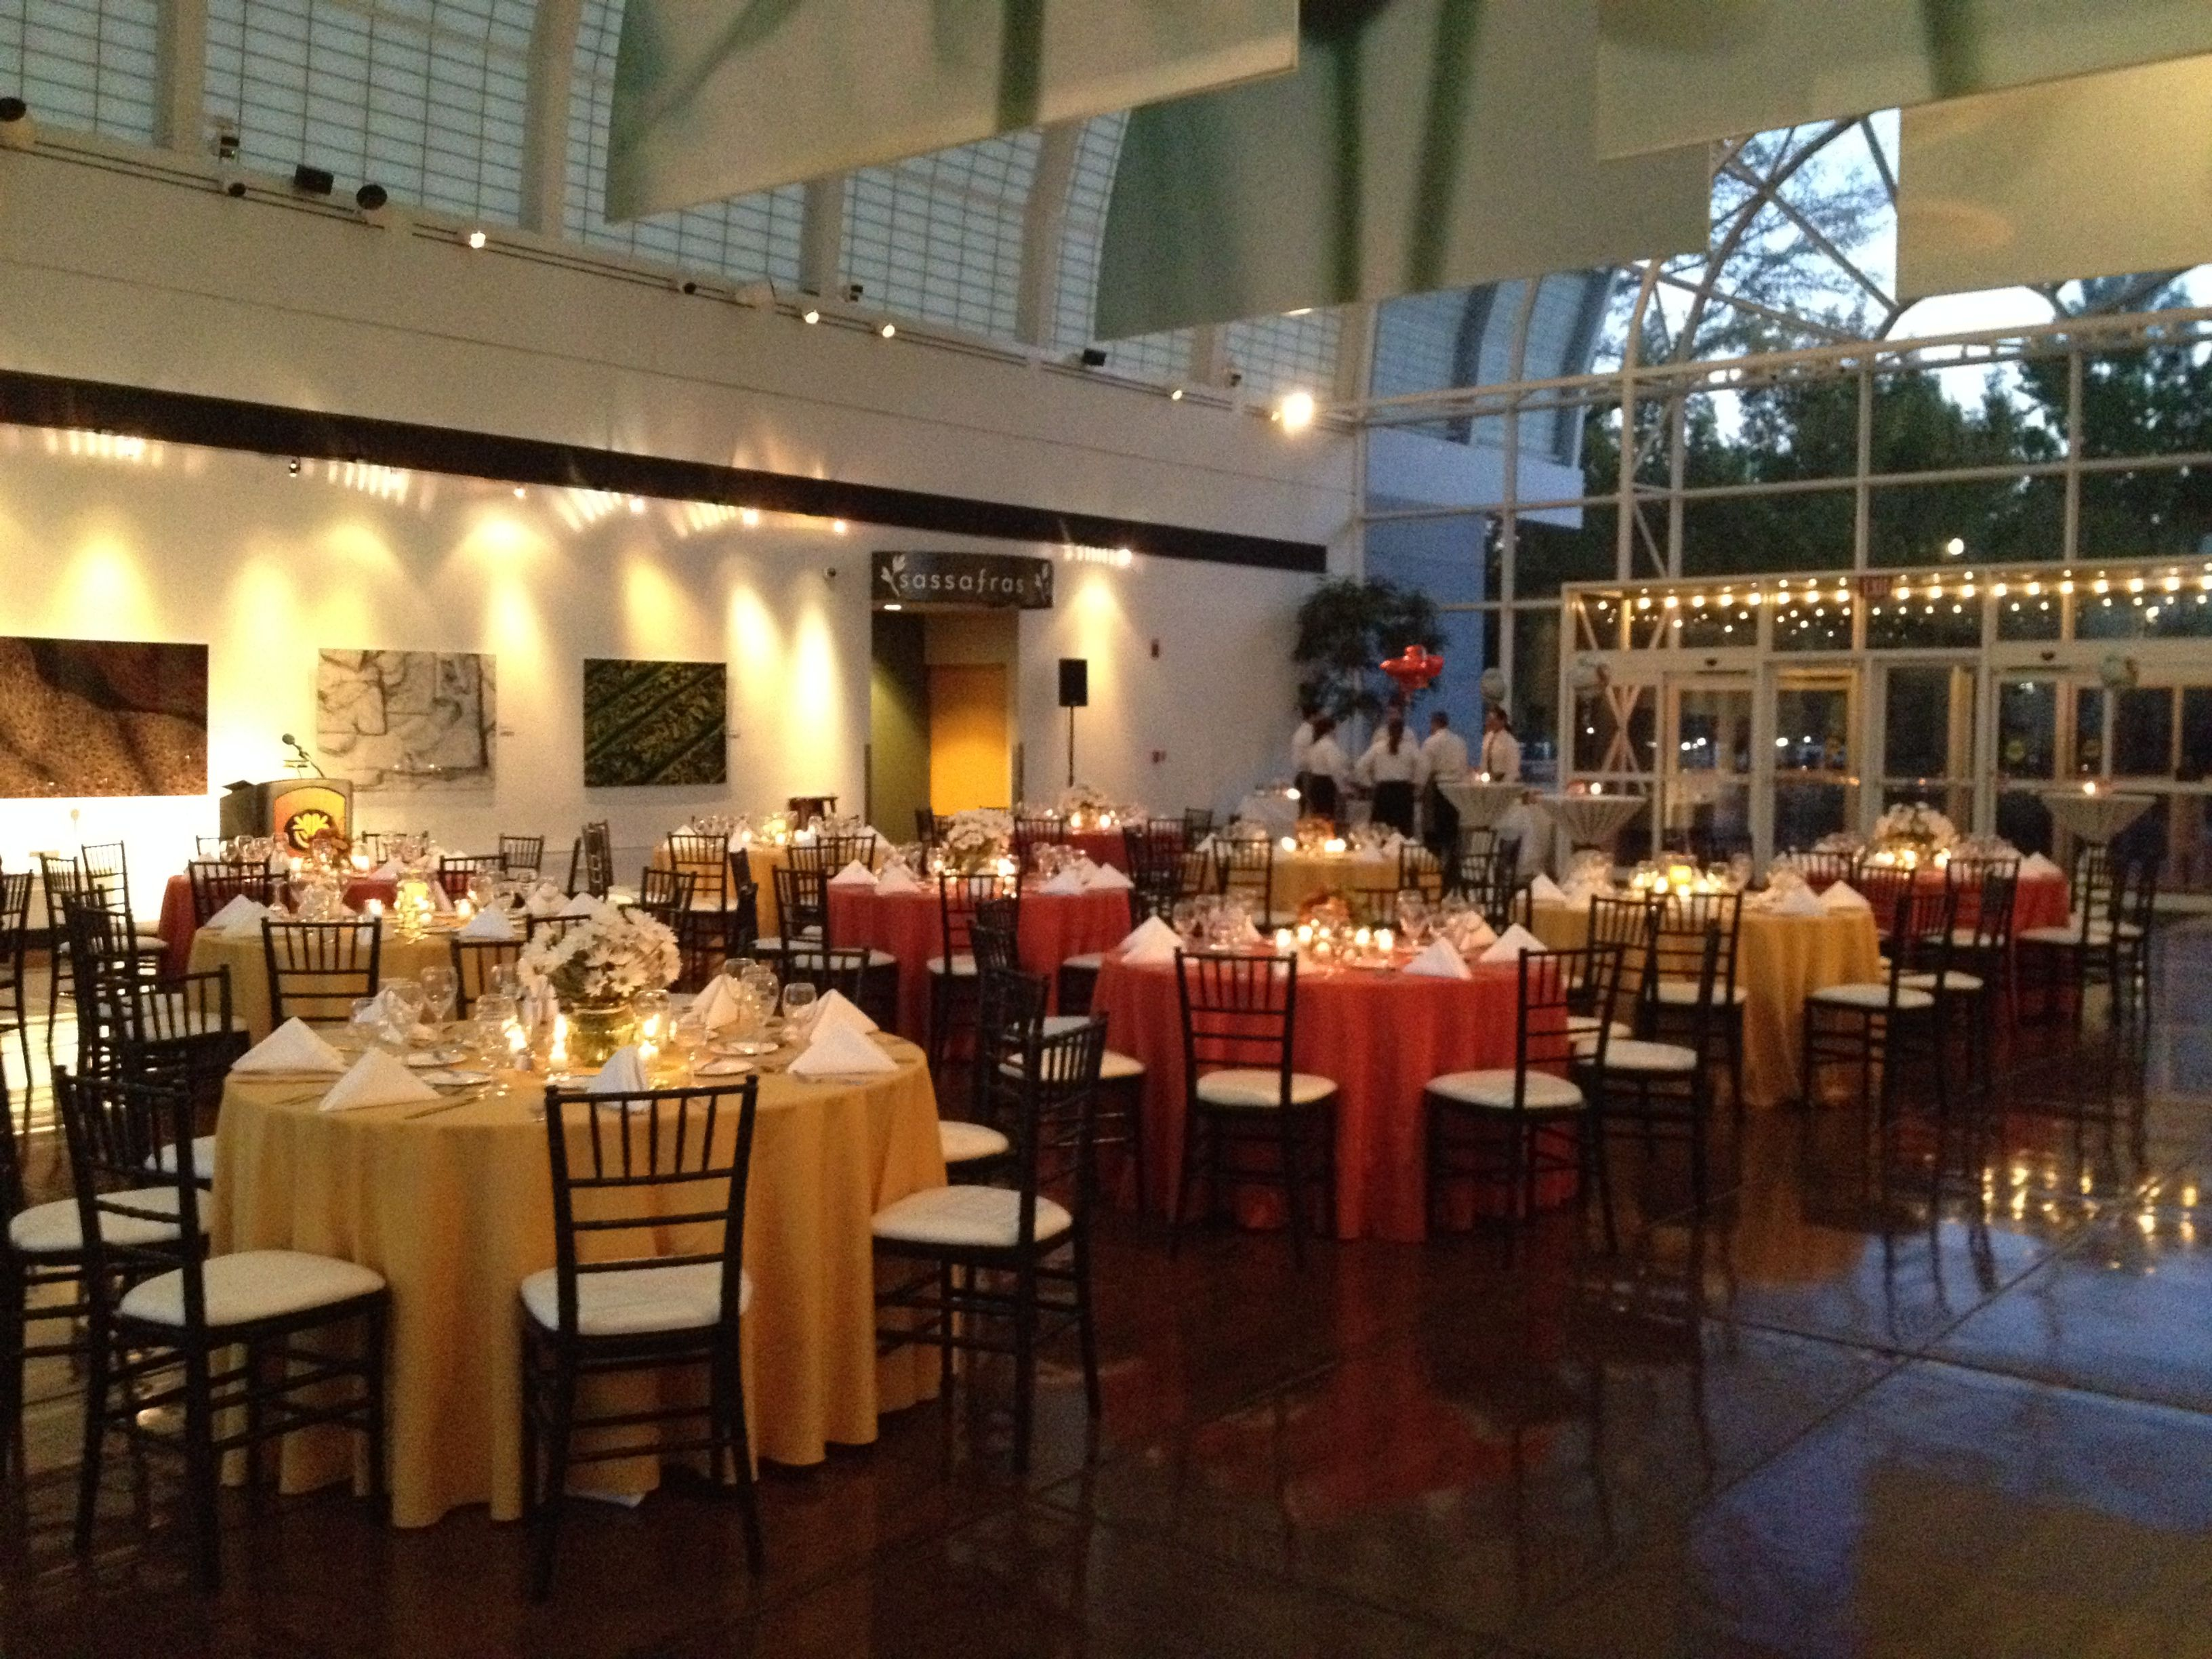 Corporate Event Missouri Botanical Garden. Events at the